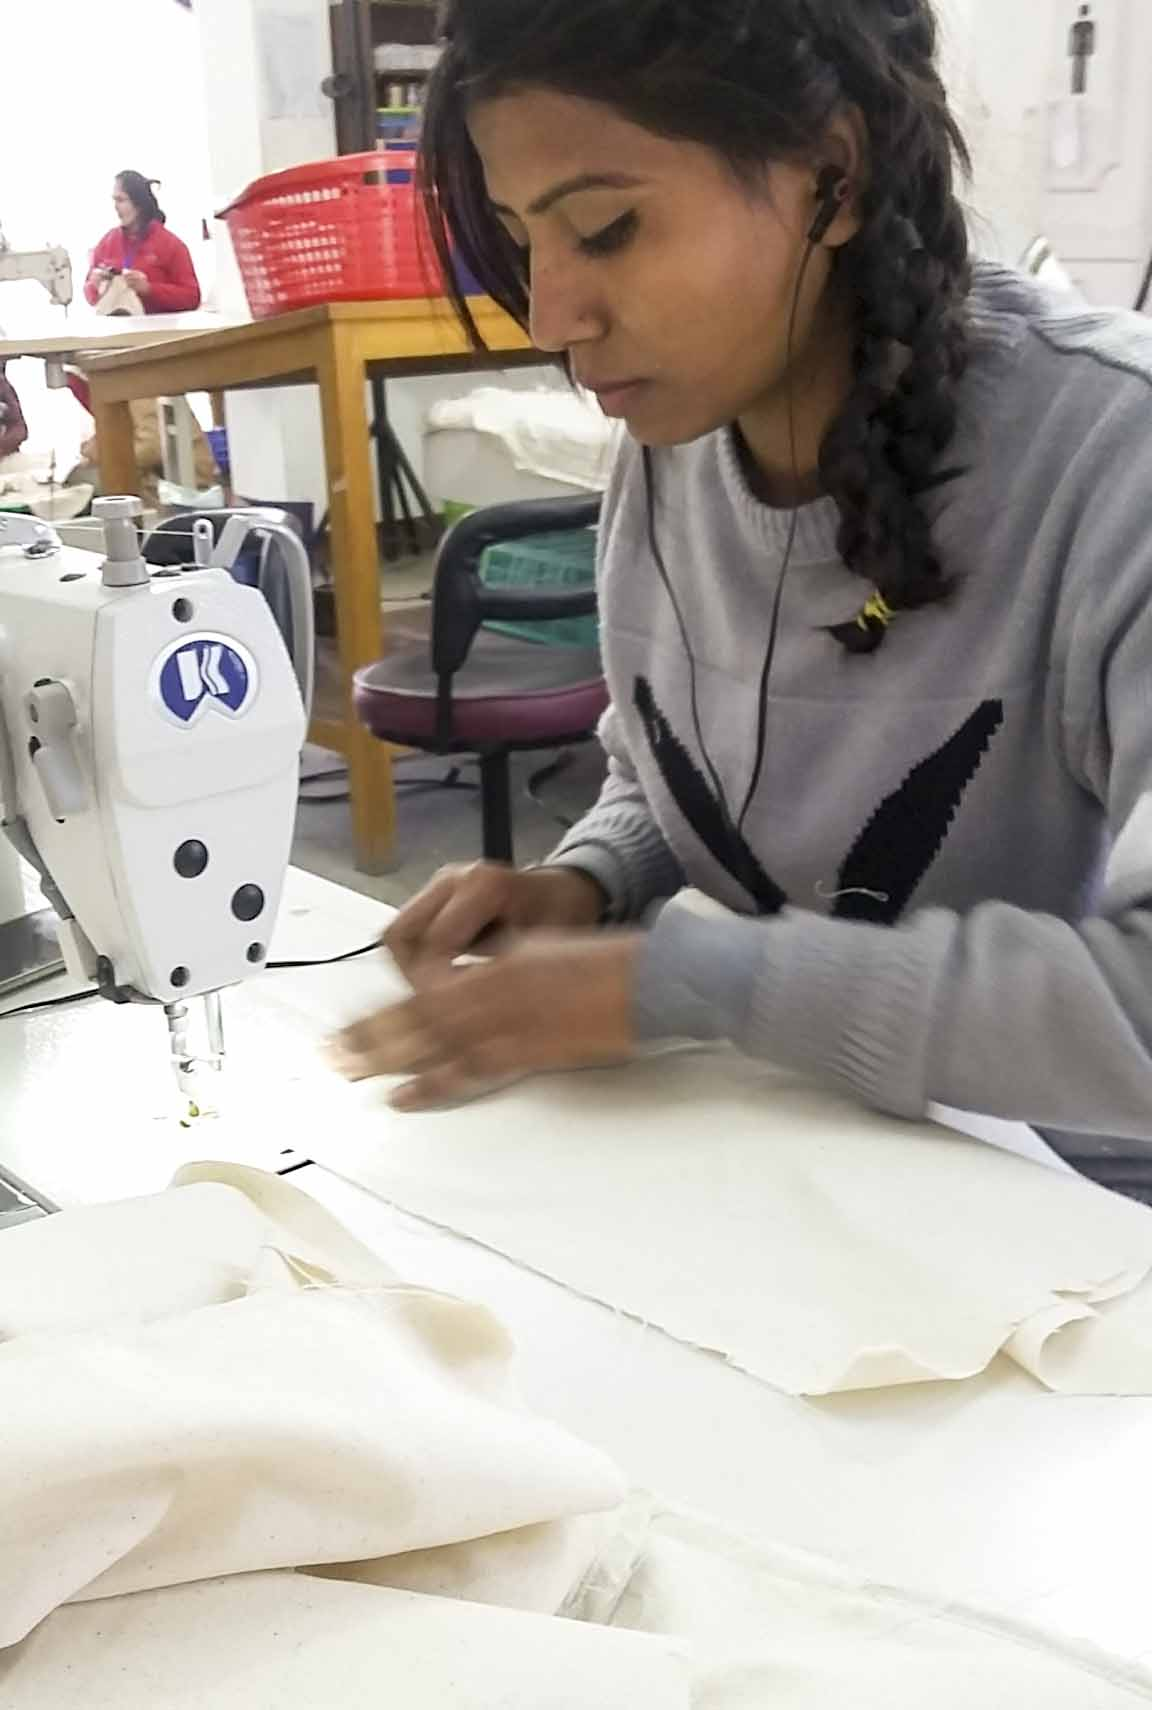 mission adventures bag in production 1.jpg